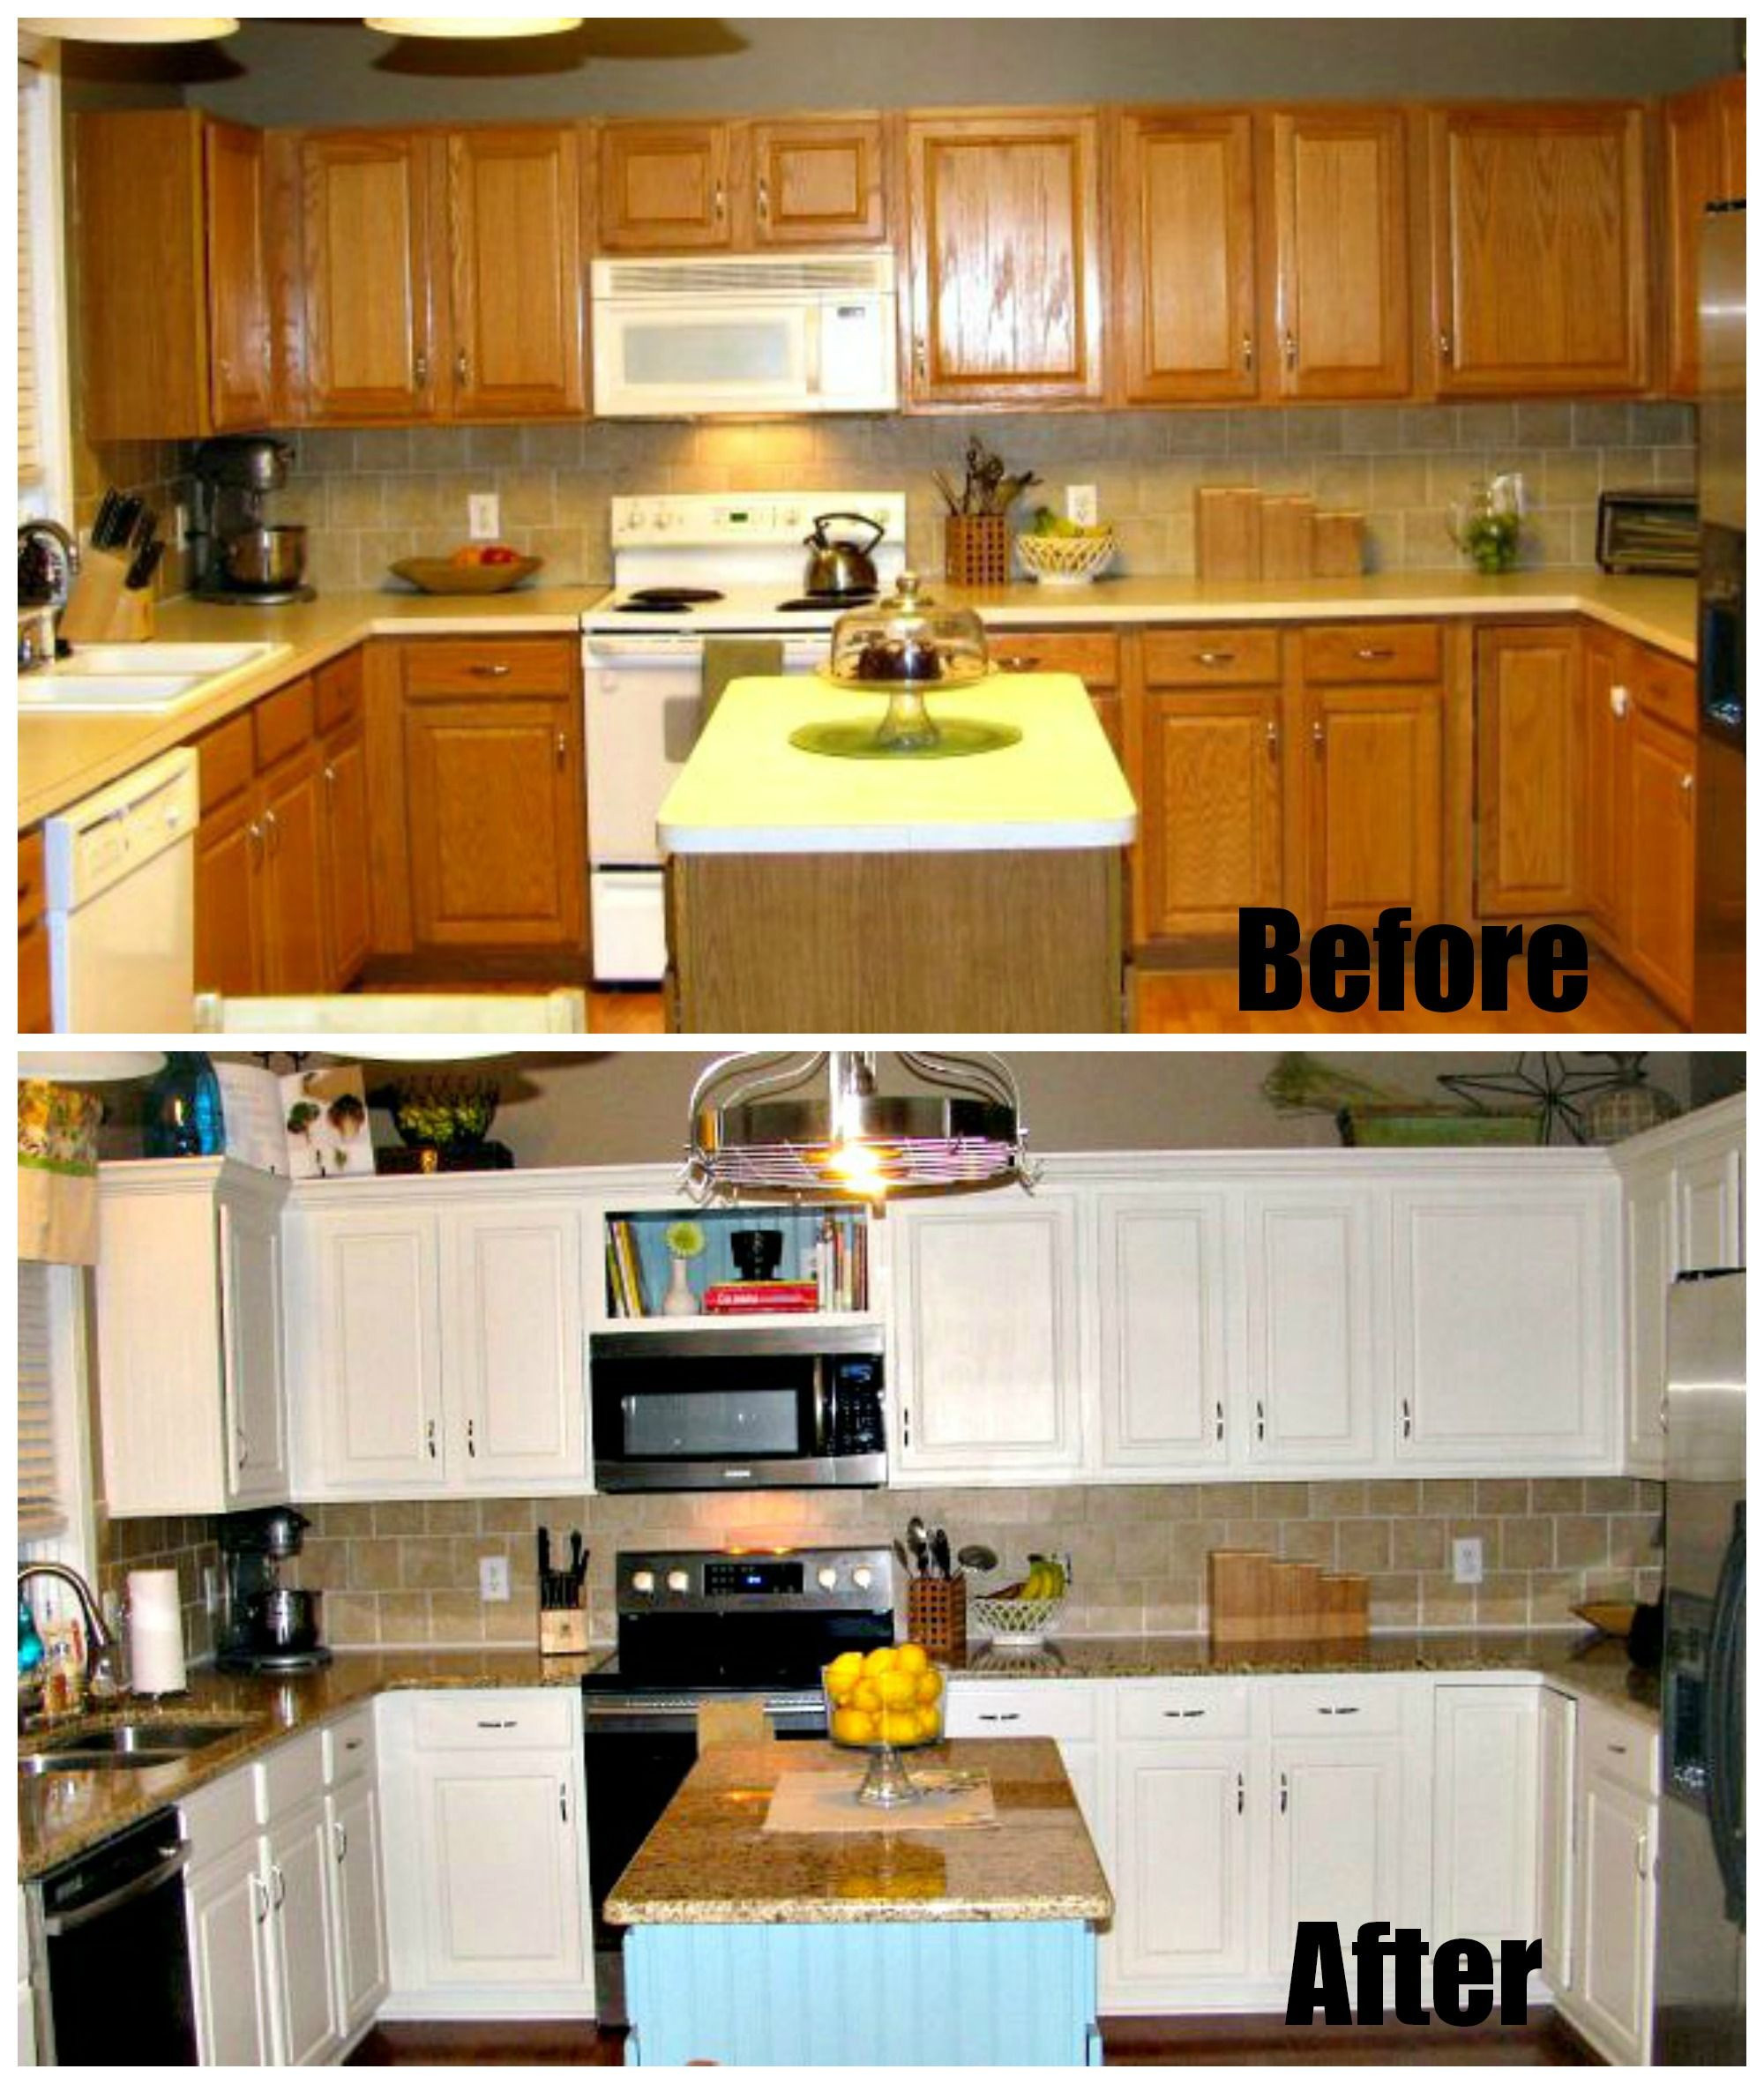 Best ideas about DIY Kitchen Remodel On A Budget . Save or Pin DIY low bud kitchen remodel Now.